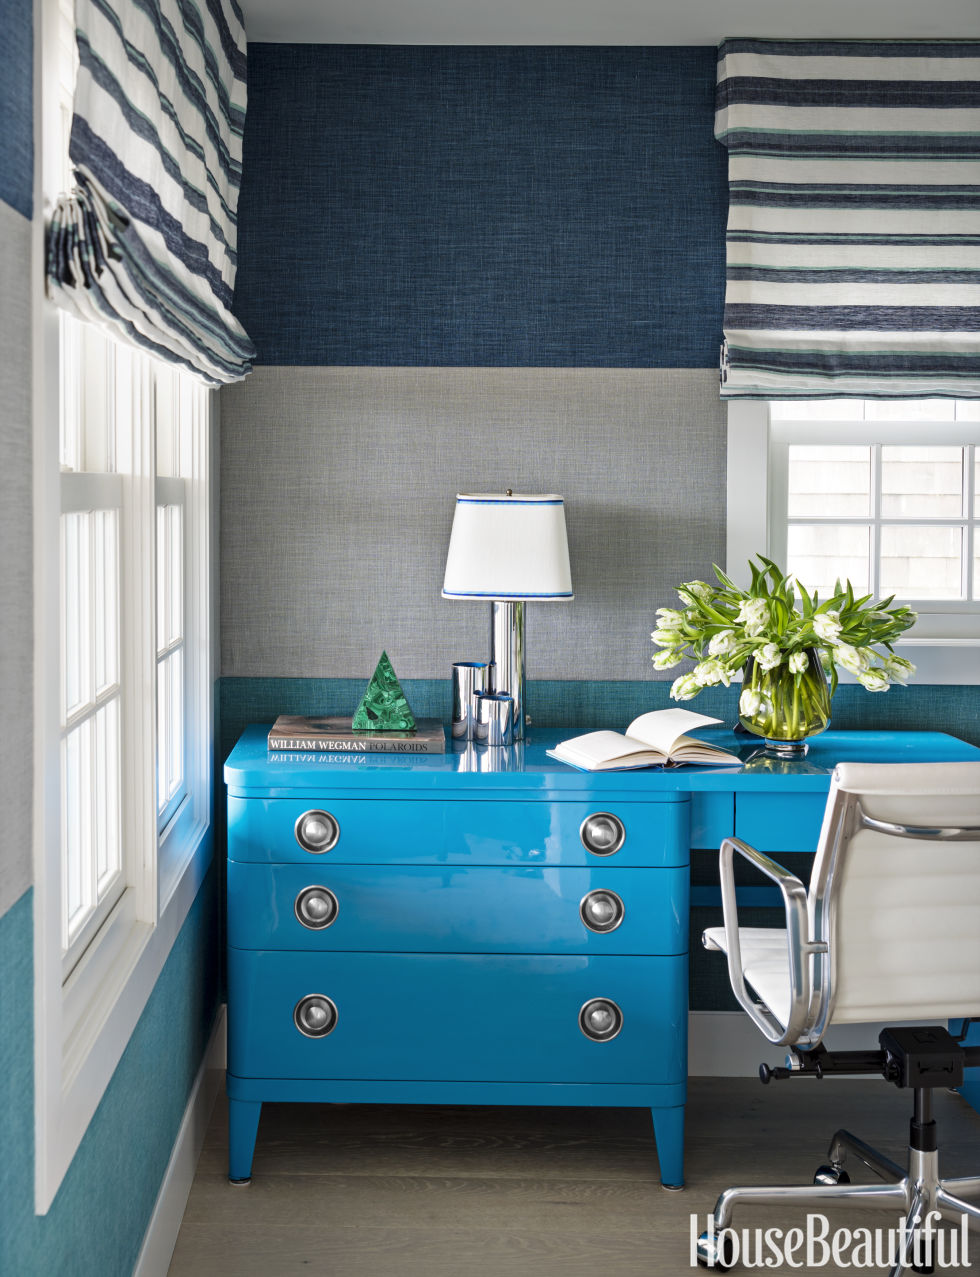 The House Beautiful 60+ best home office decorating ideas - design photos of home